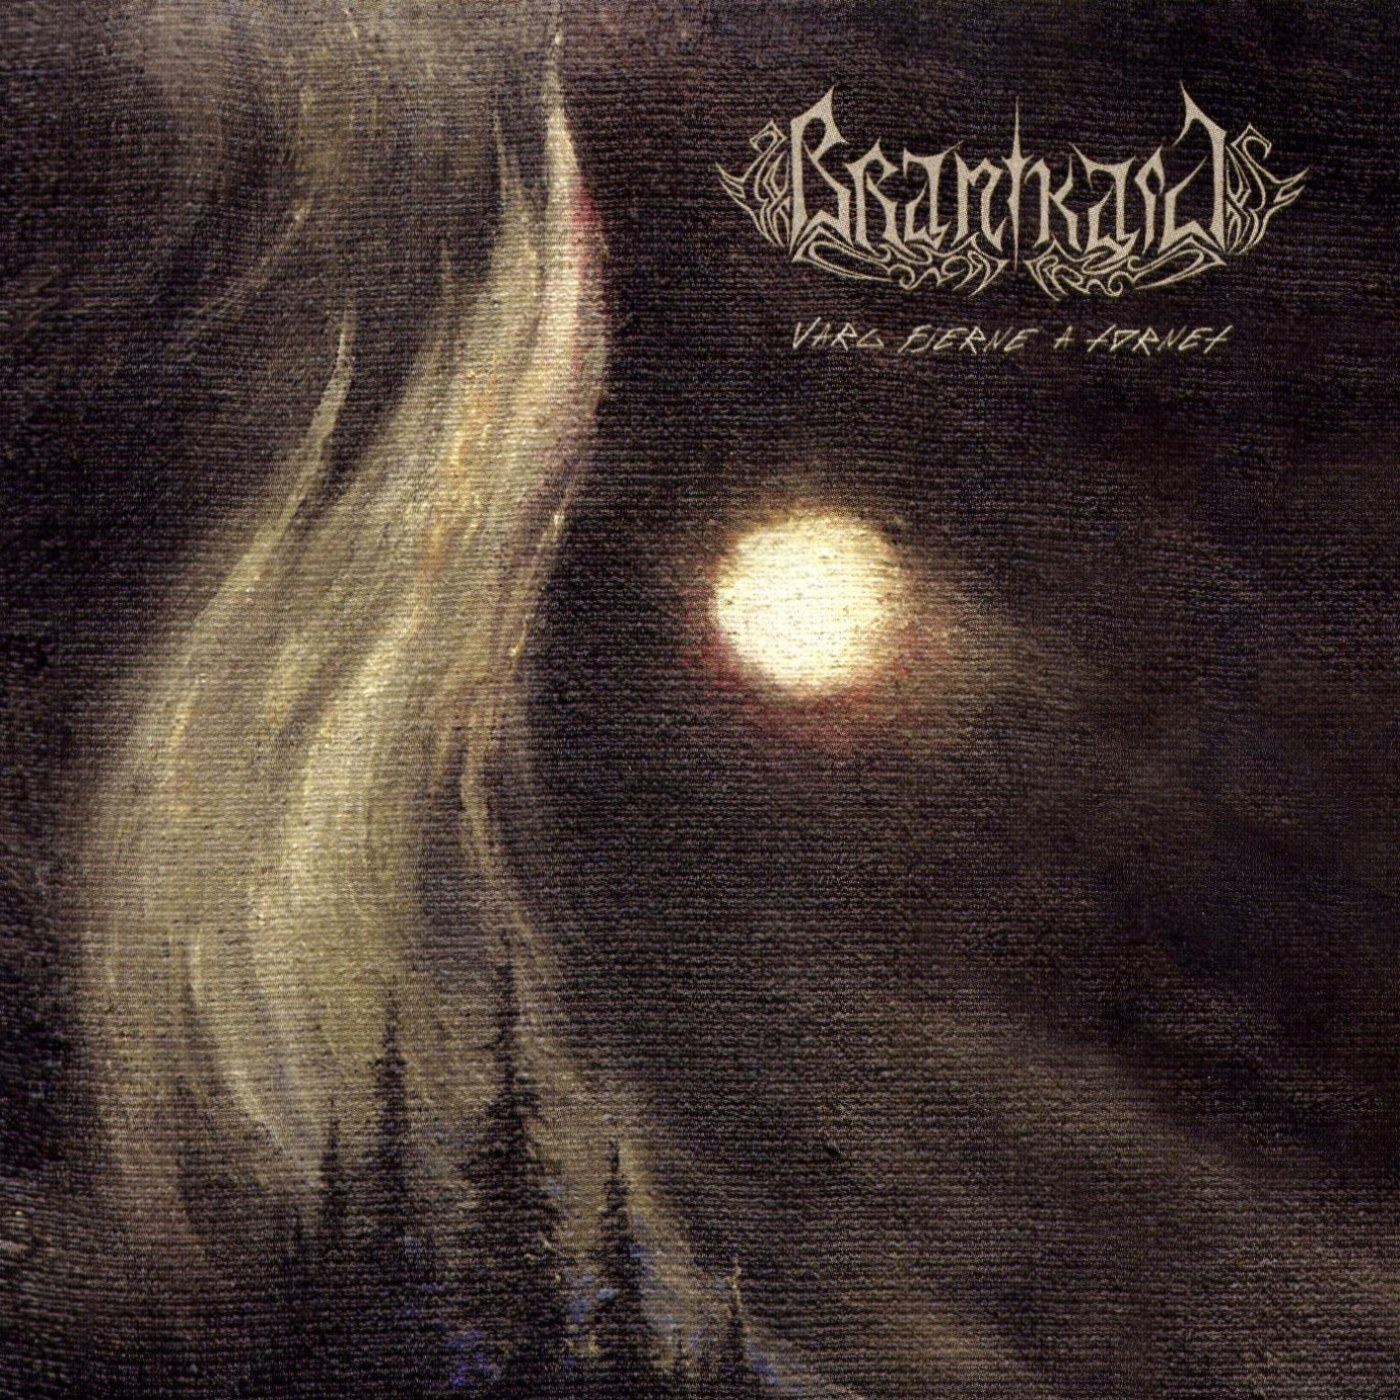 Review for Branikald - Varg Fjerne a Tornet